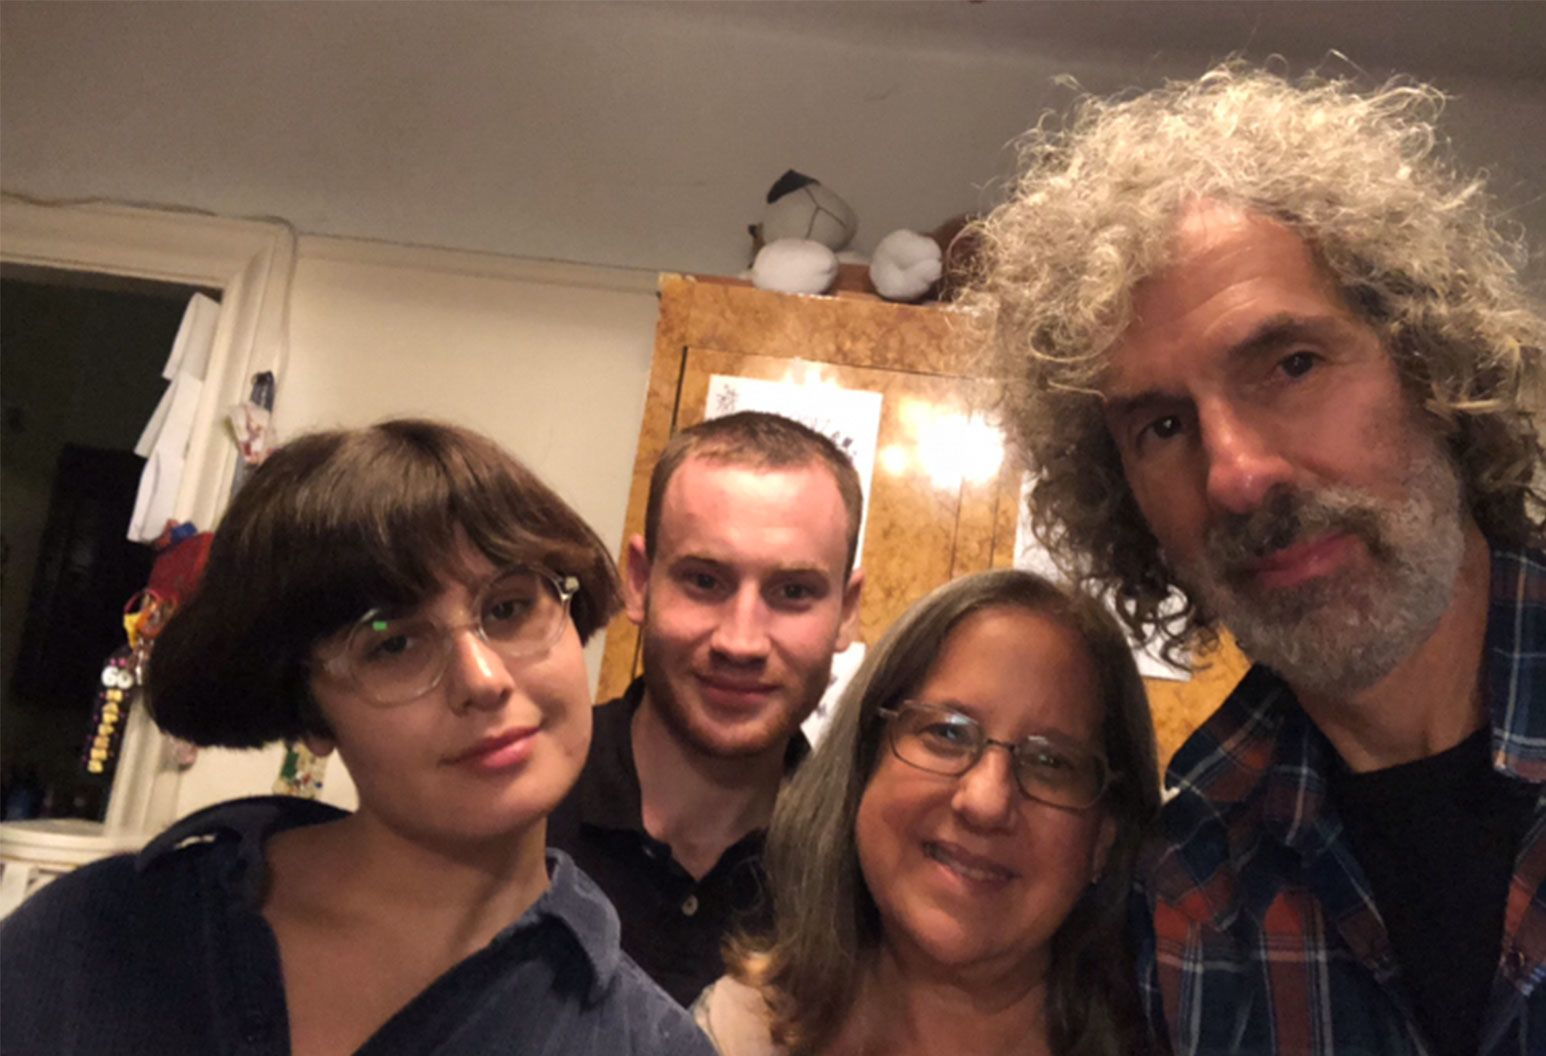 A group of people pose for the camera. An older man with grey hair and a scruffy beard, an older and younger female both wearing glasses, and a young man with short hair.